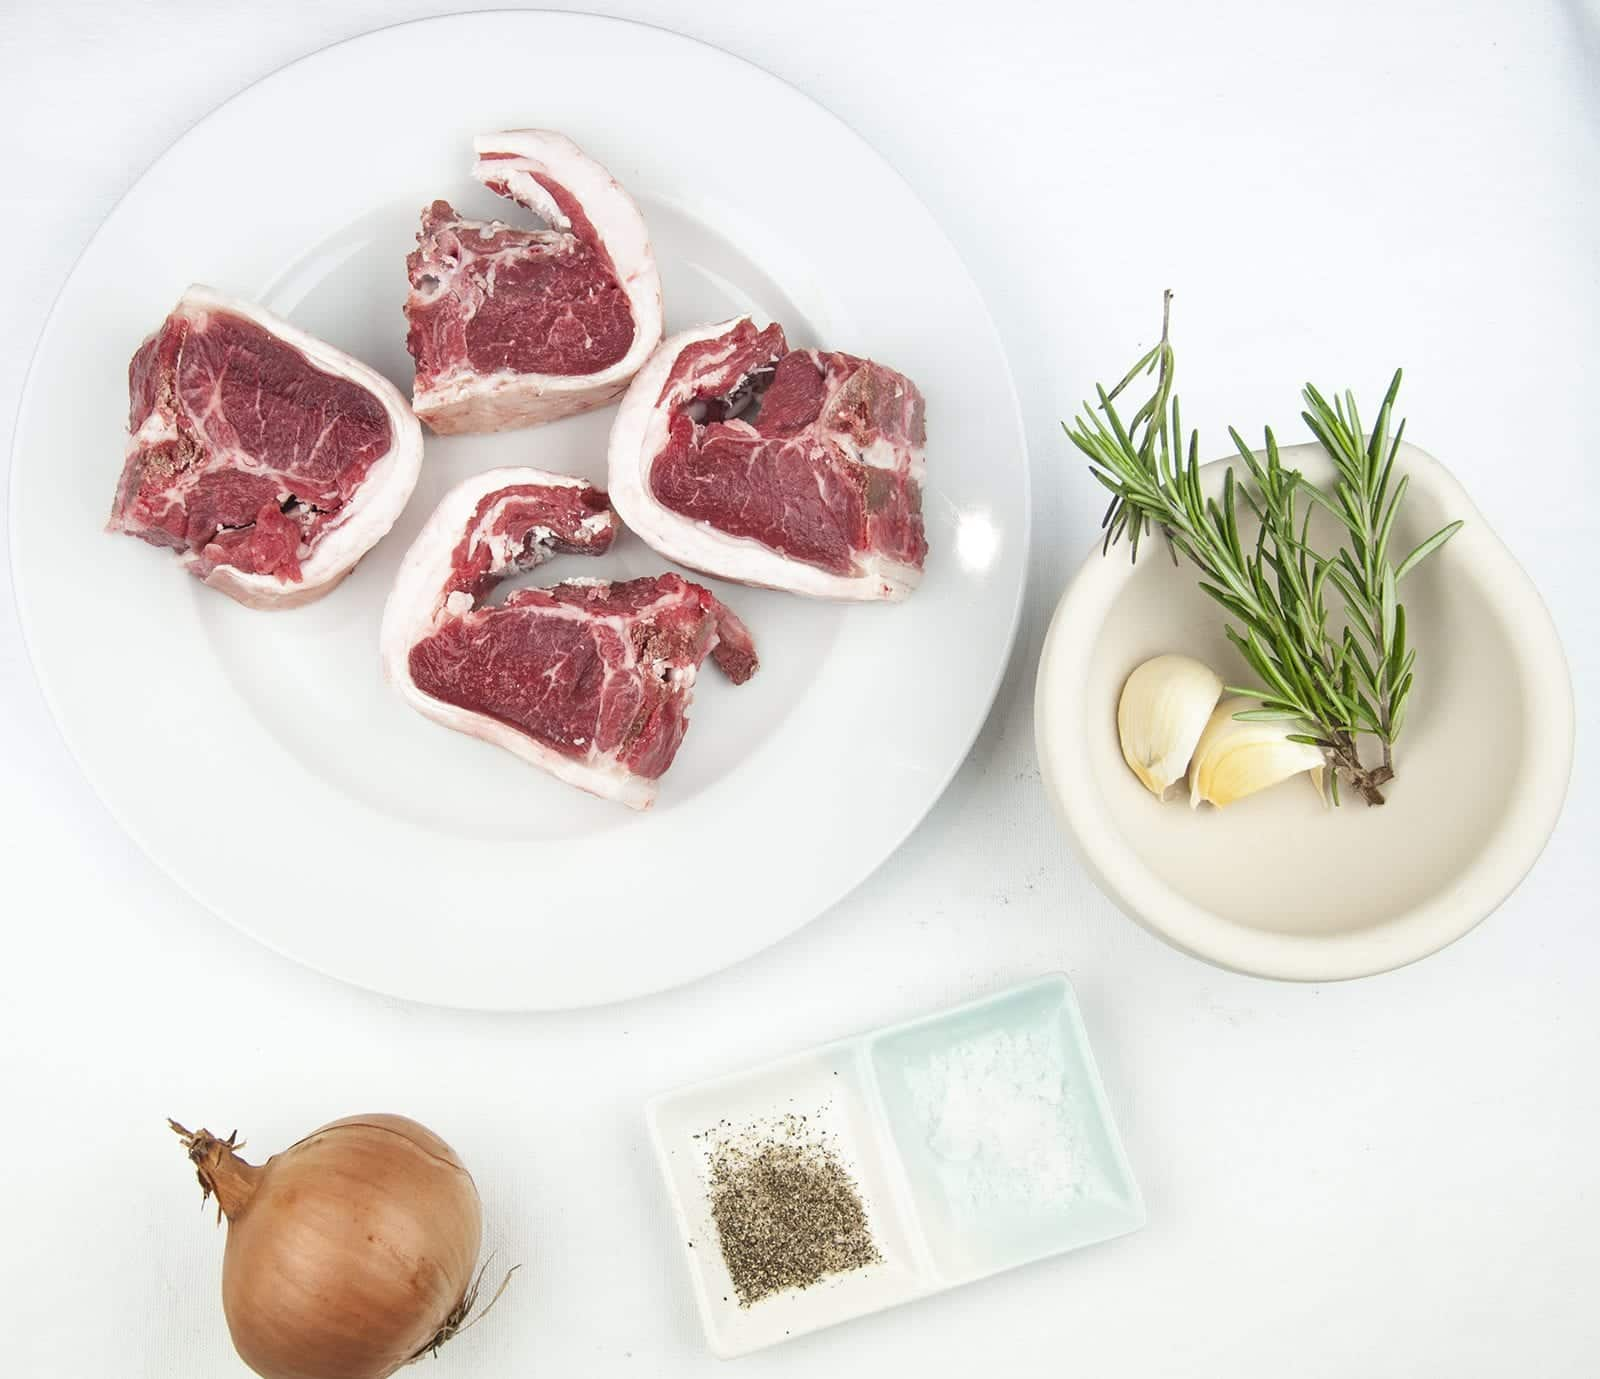 Look at these wonderfully succulent slow roasted lamb chops. Mouth-watering lamb cooked with garlic and rosemary. A midweek extravagance but why not eh? Go on, treat yourself. Yum! | theyumyumclub.com